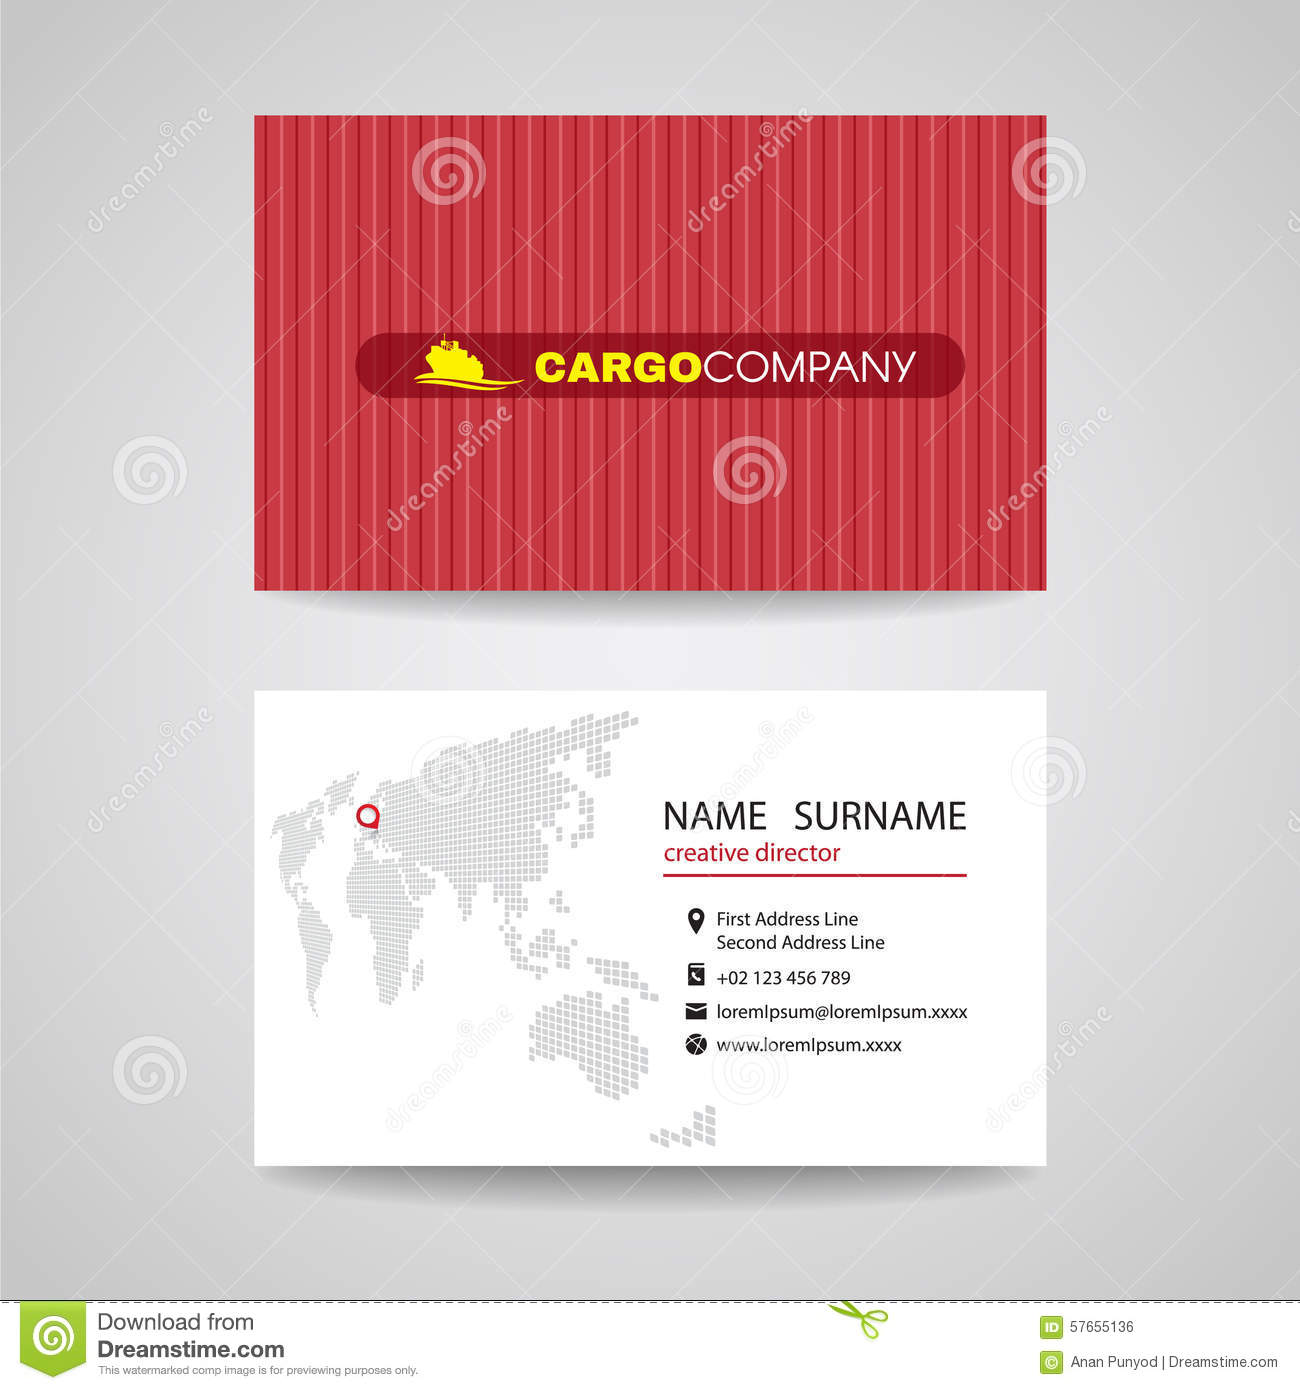 business card red container vector background for cargo or shipping